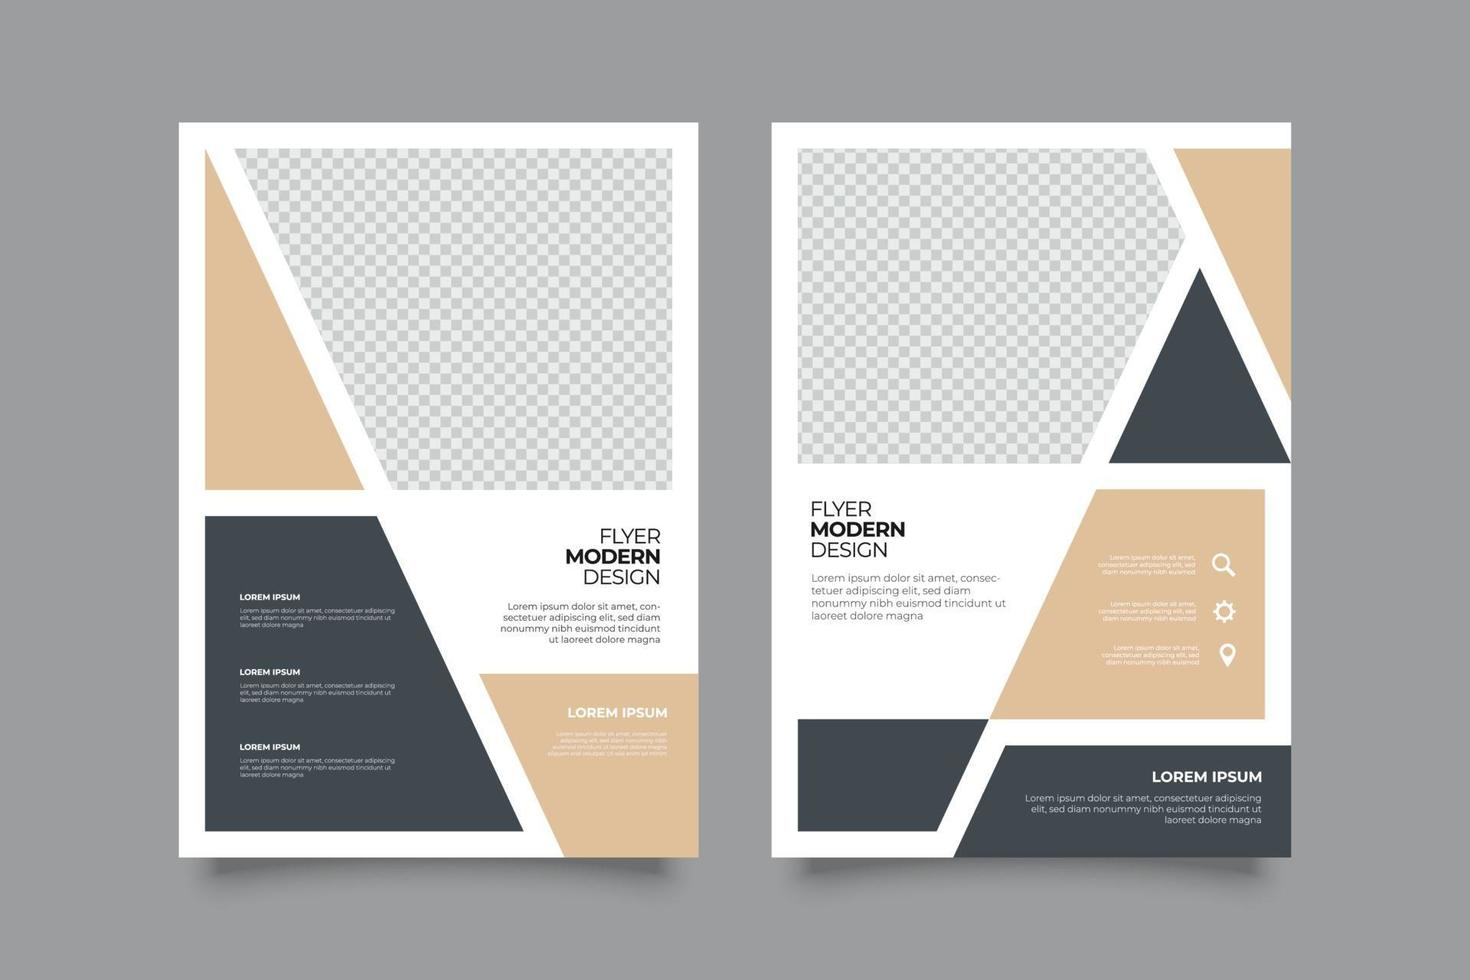 Minimalist webinar Flyer Template with Shapes vector